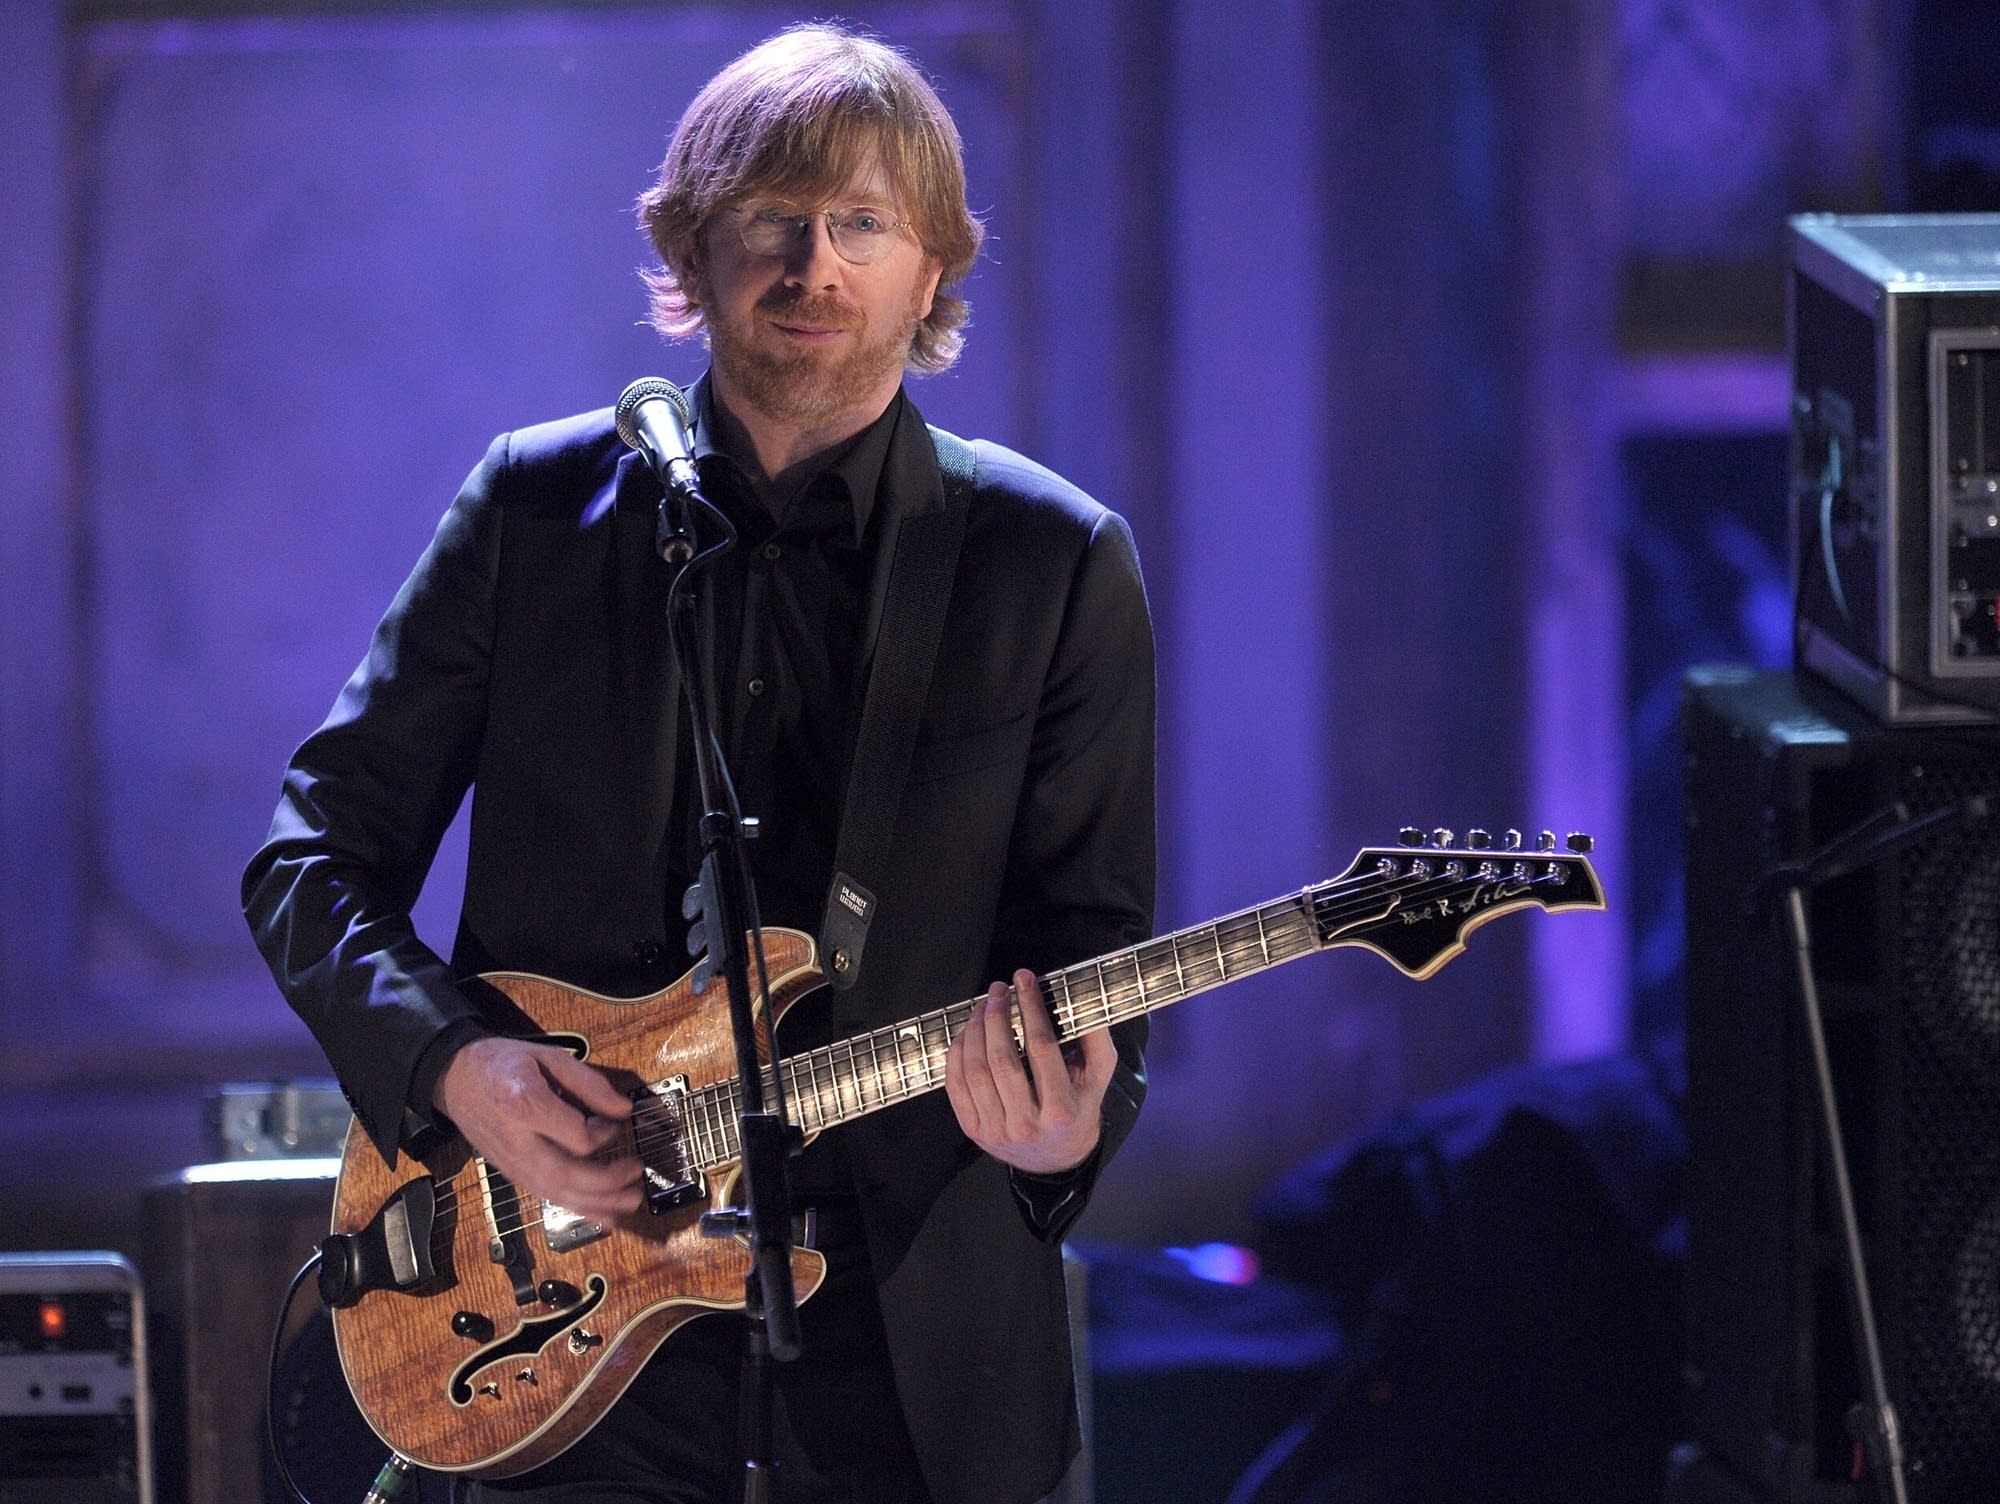 Trey Anastasio of Phish performs in 2010.